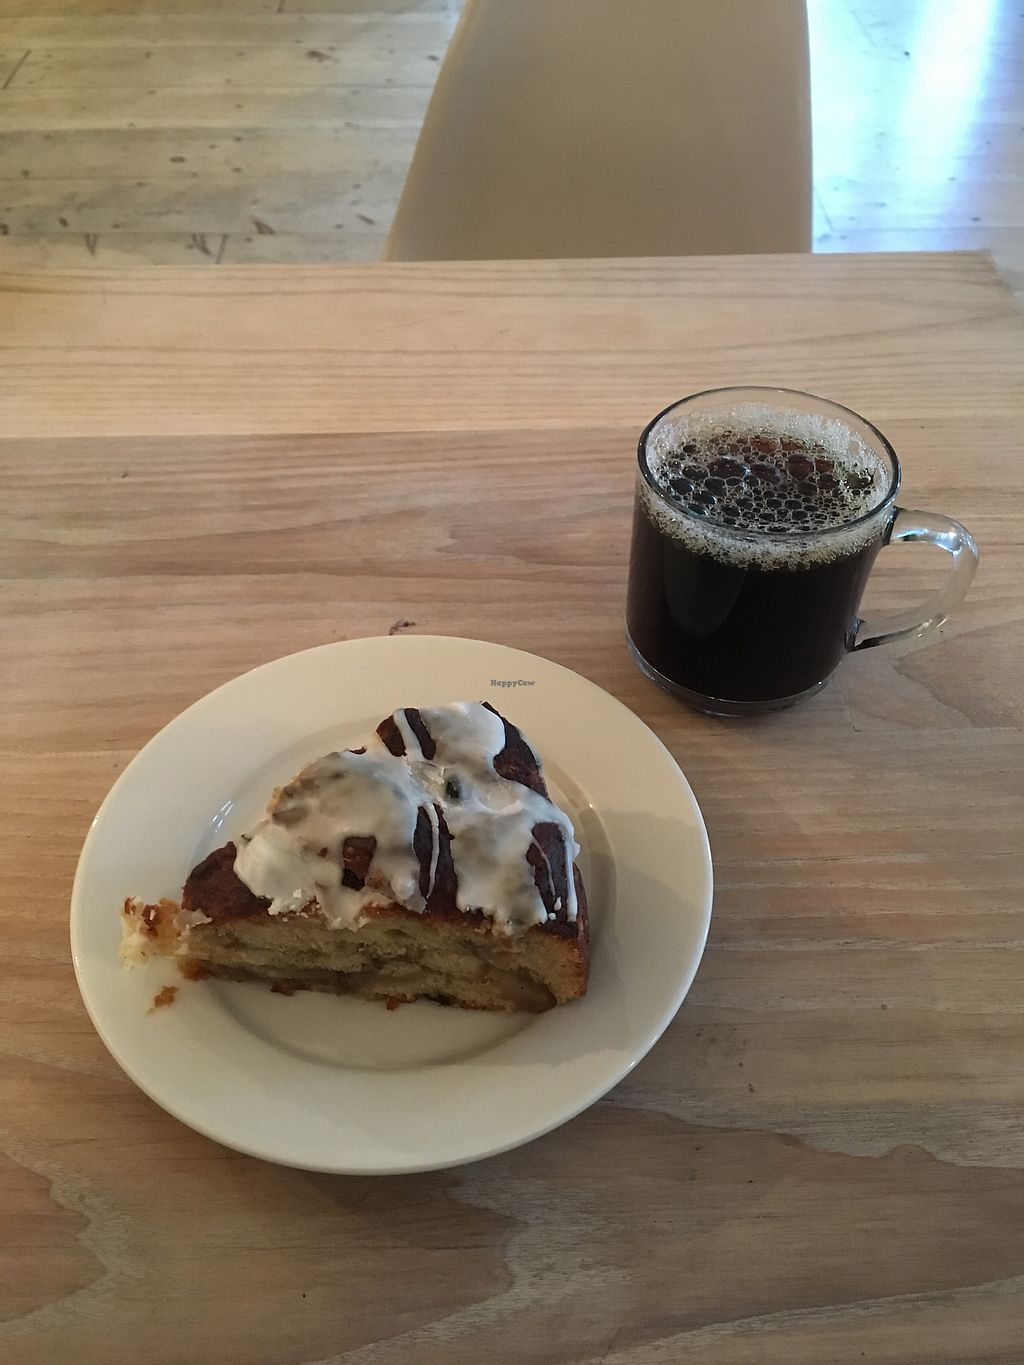 "Photo of Clementine Bakery  by <a href=""/members/profile/770veg"">770veg</a> <br/>Apple raisin monkey bread and some fresh kitten coffee <br/> October 20, 2017  - <a href='/contact/abuse/image/30943/316910'>Report</a>"